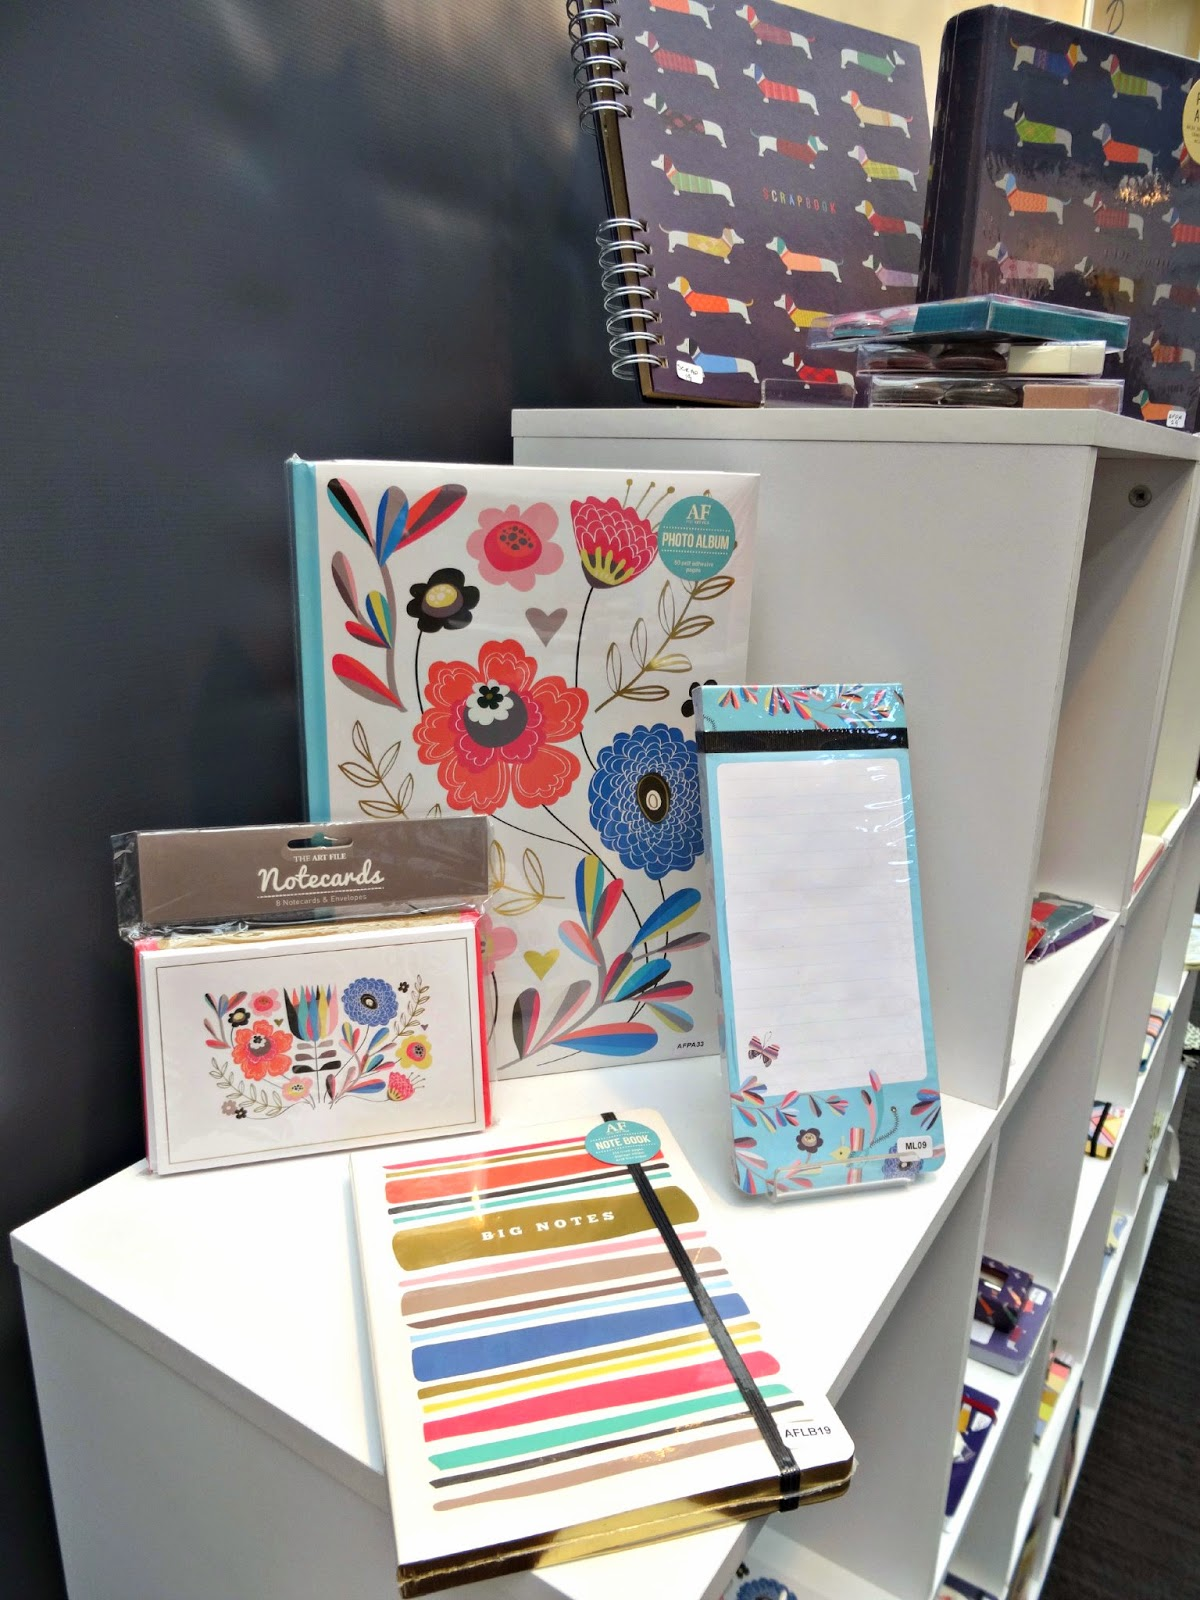 The Art File stationery